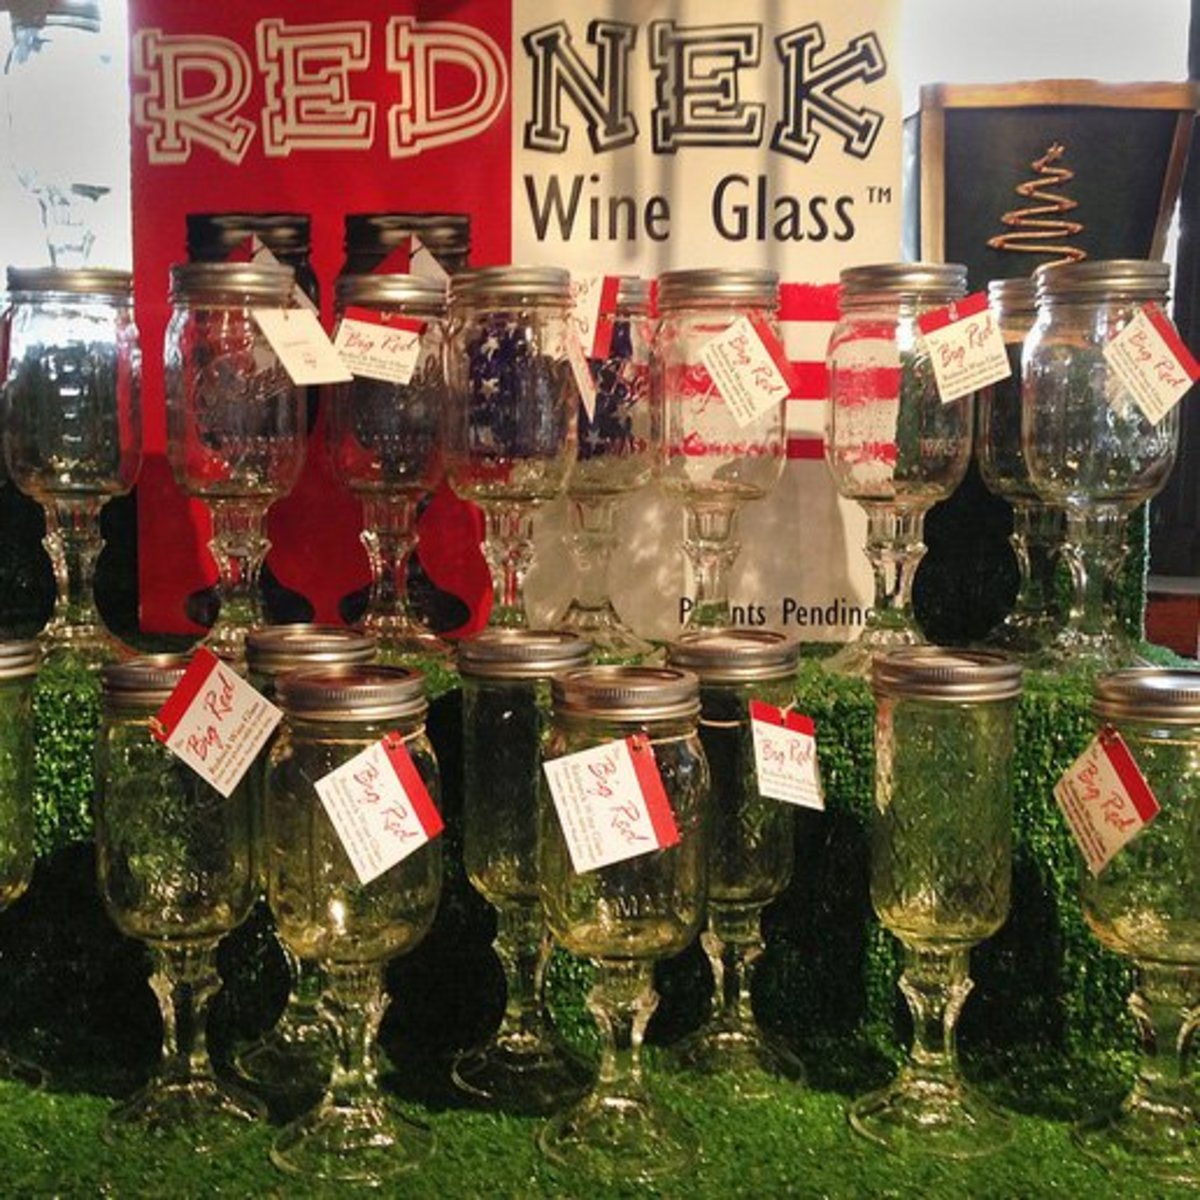 Rednek Wineglasses